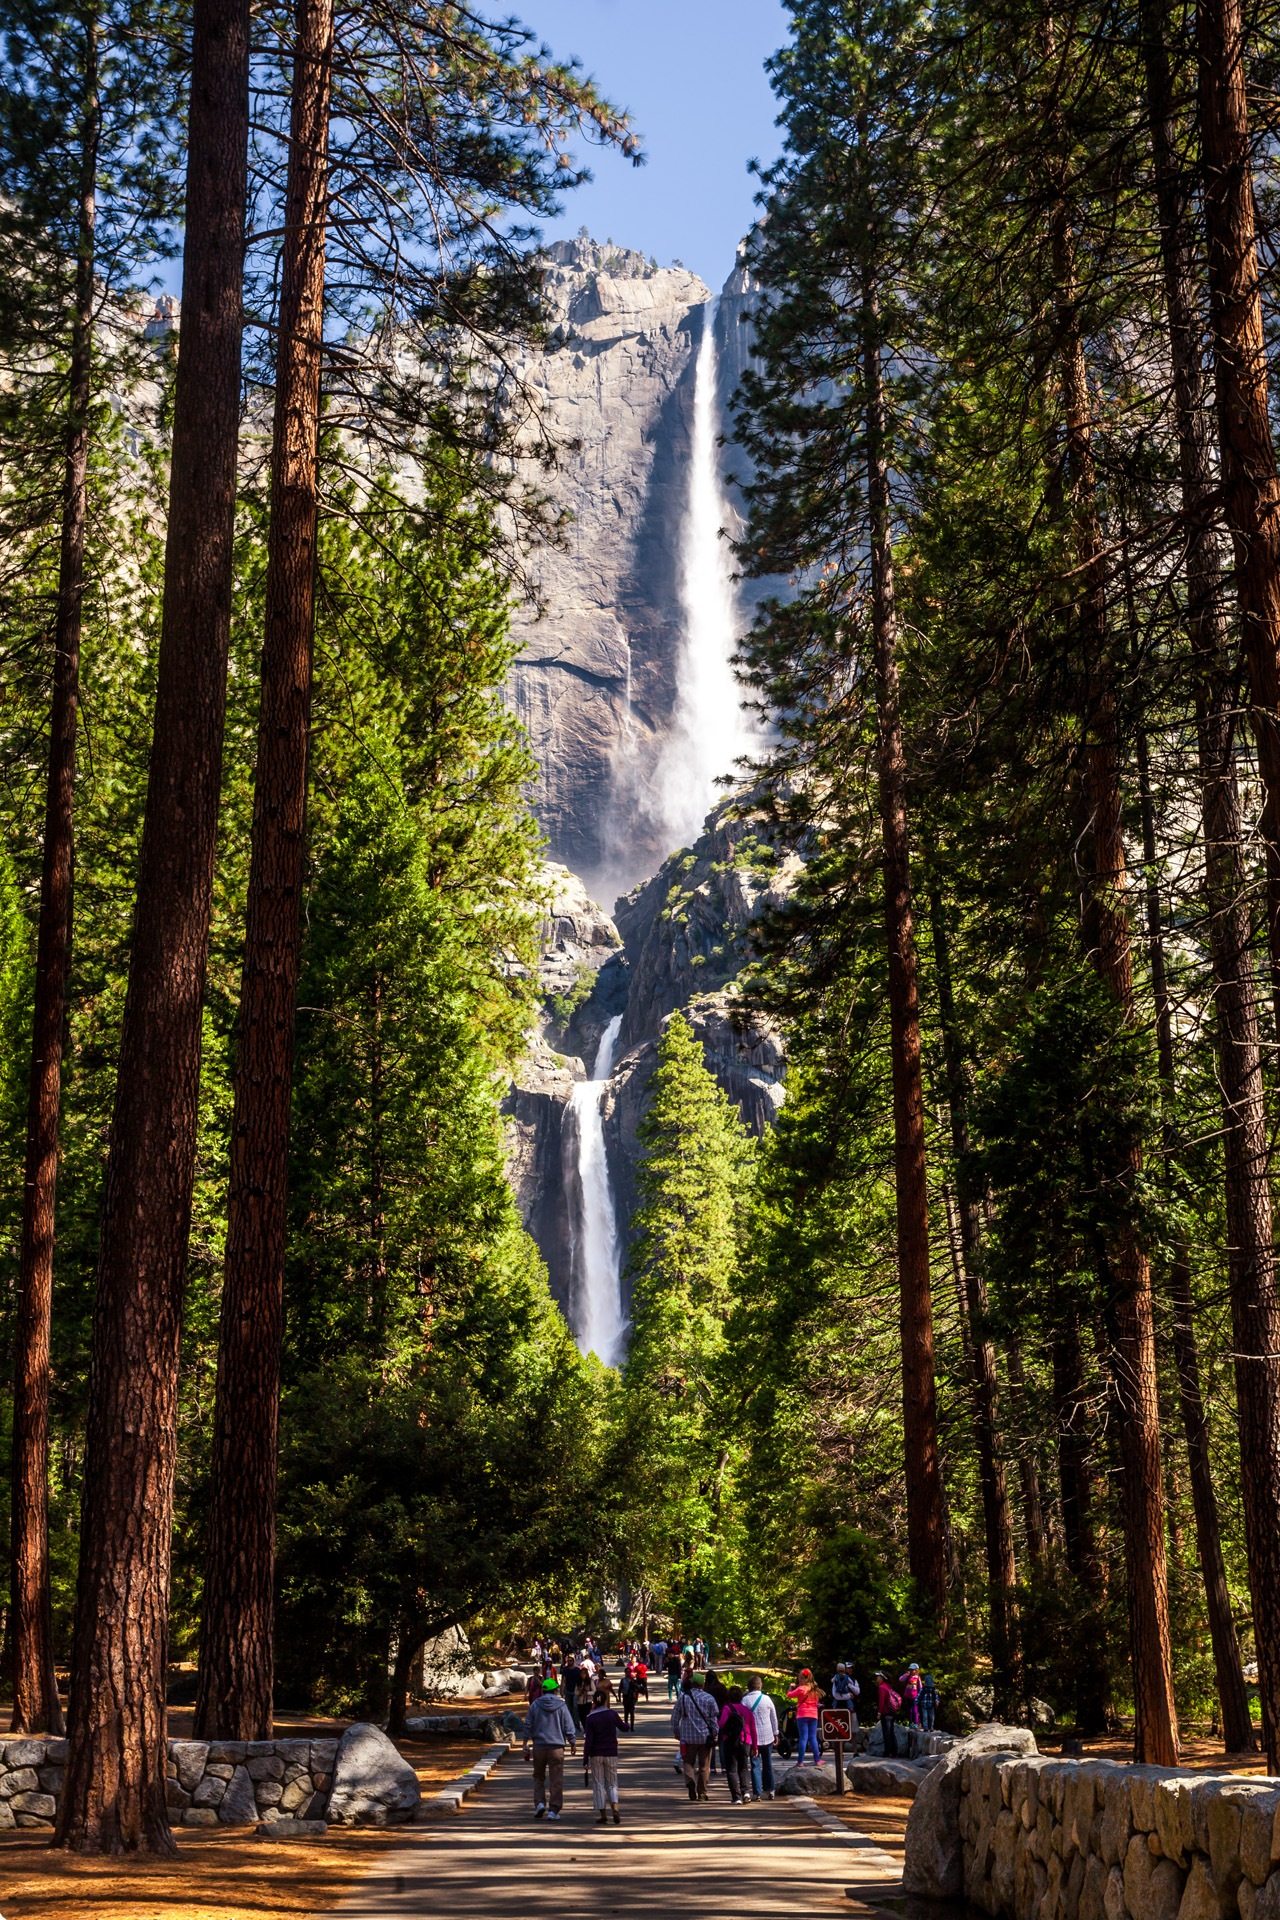 Spectacular Yosemite Falls by Michael Chlebek